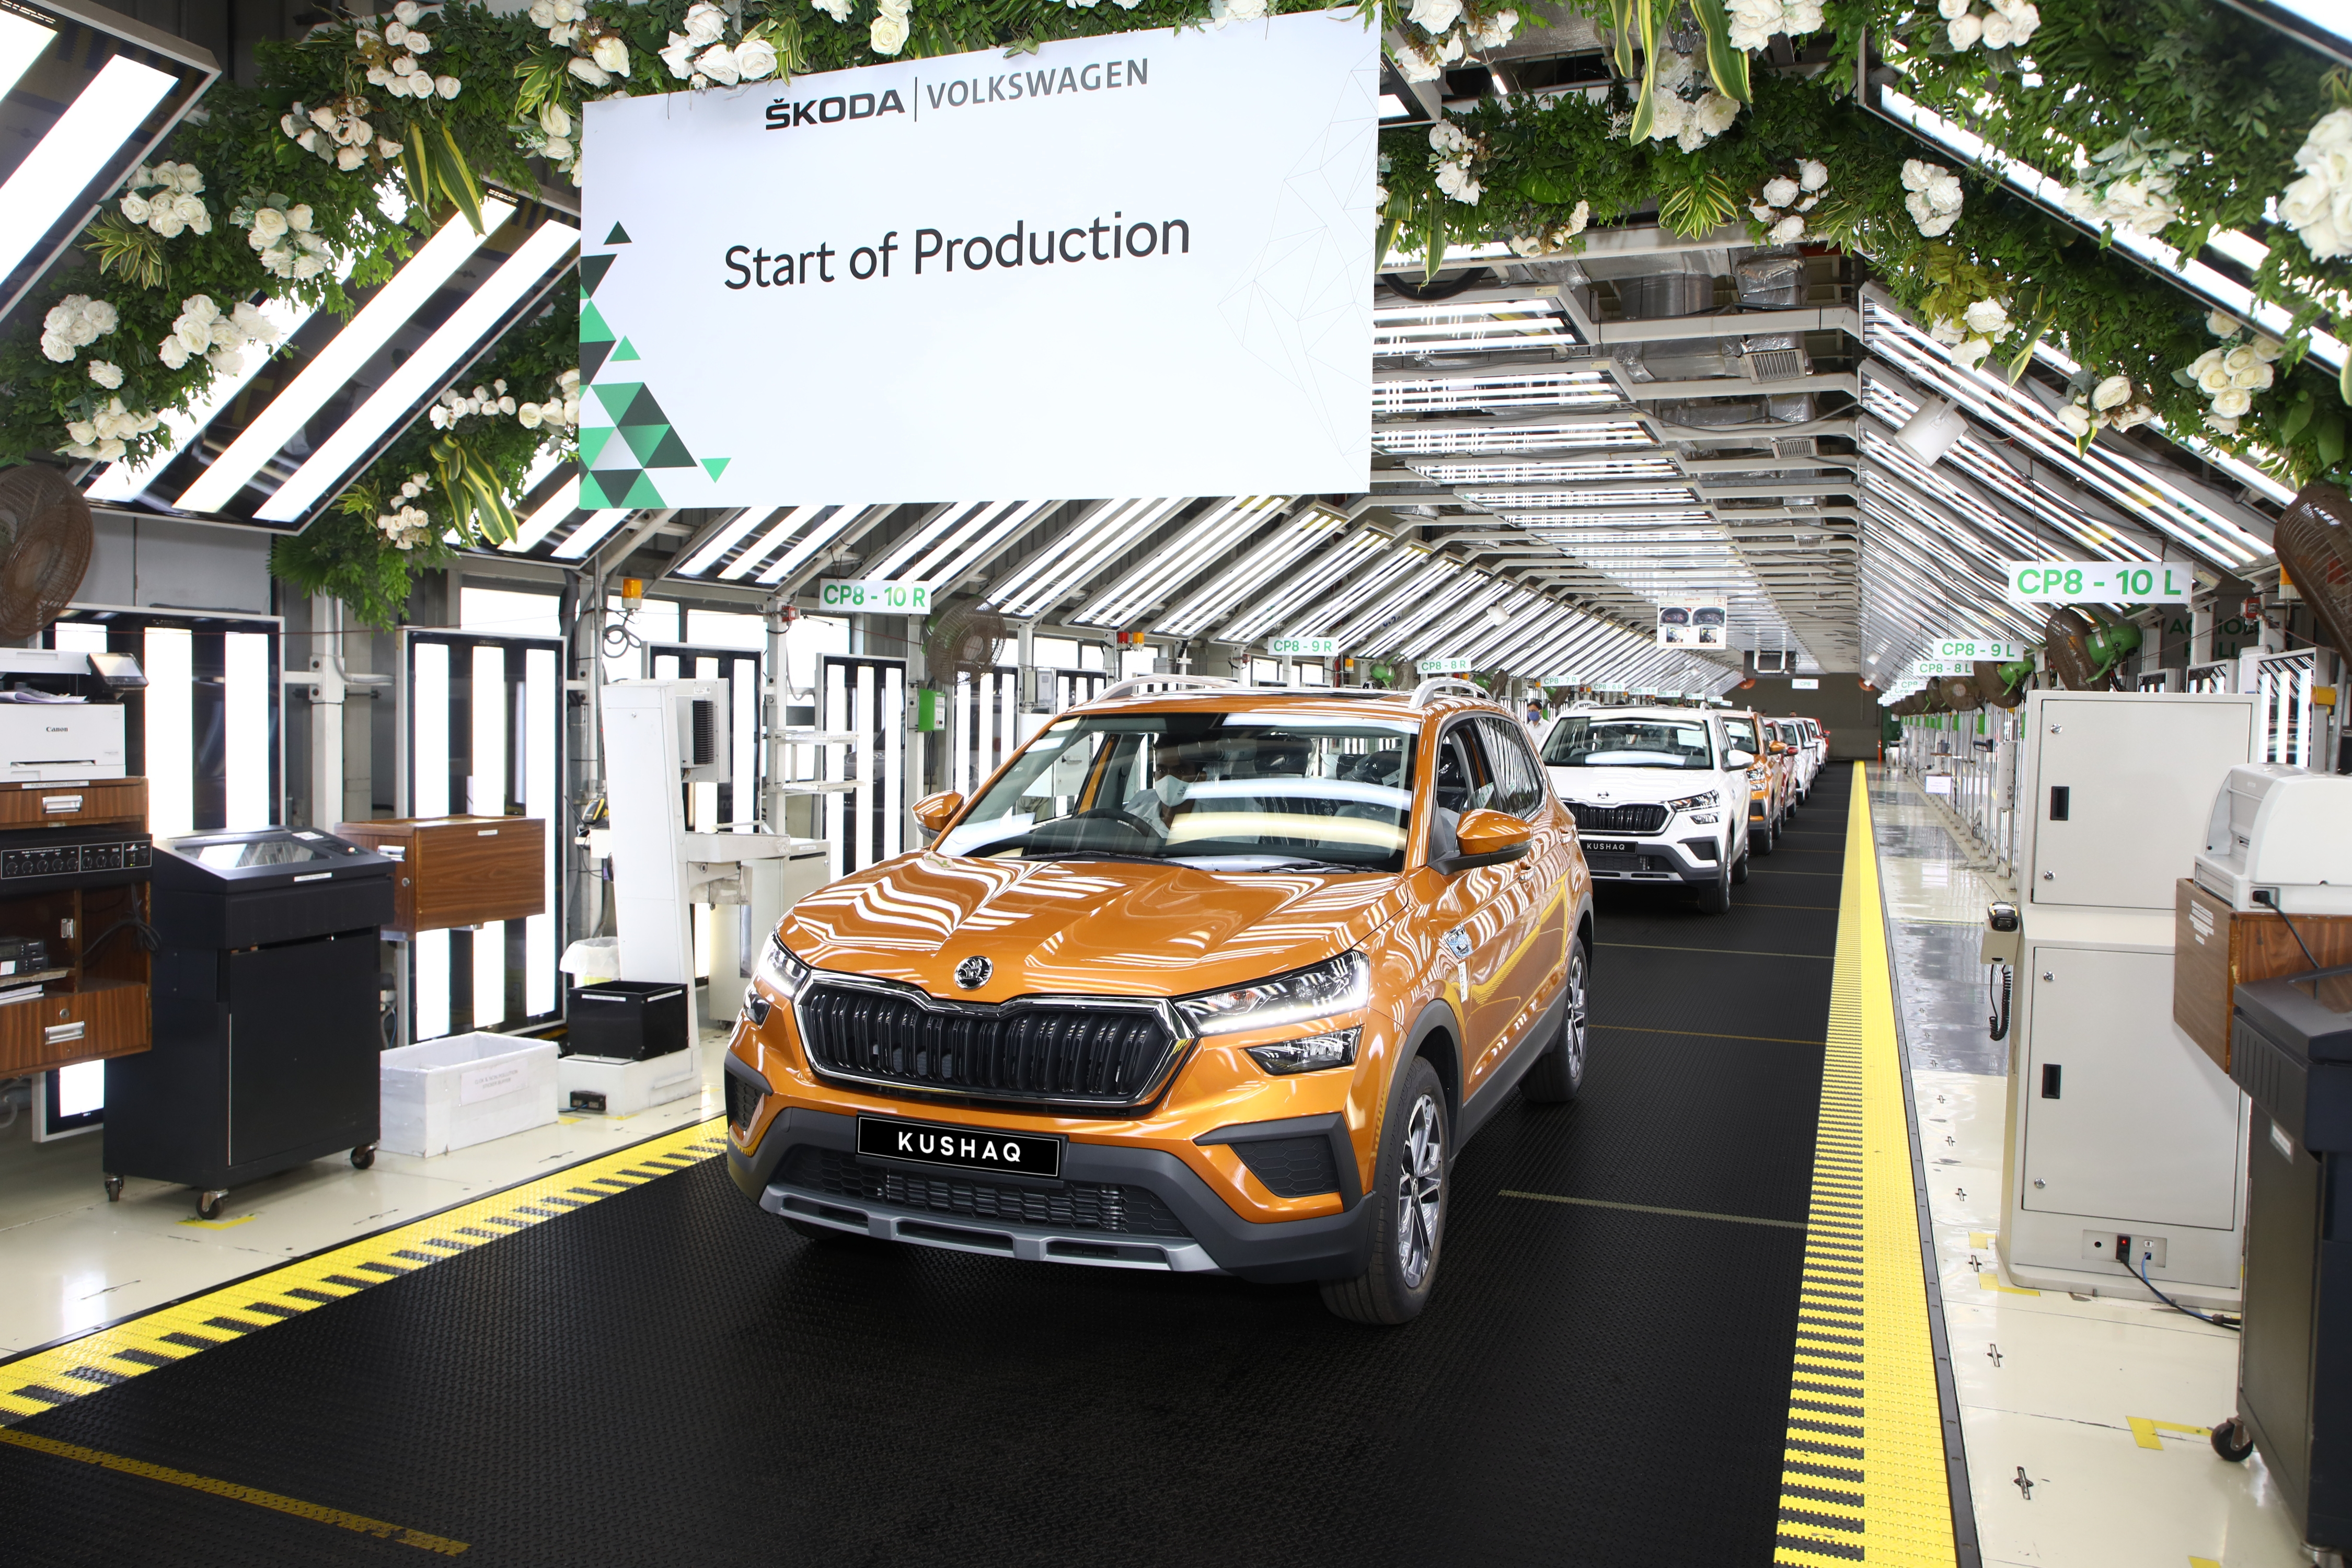 SKODA AUTO Volkswagen India Private Limited launches series production of the new SUV model KUSHAQ - Image 2